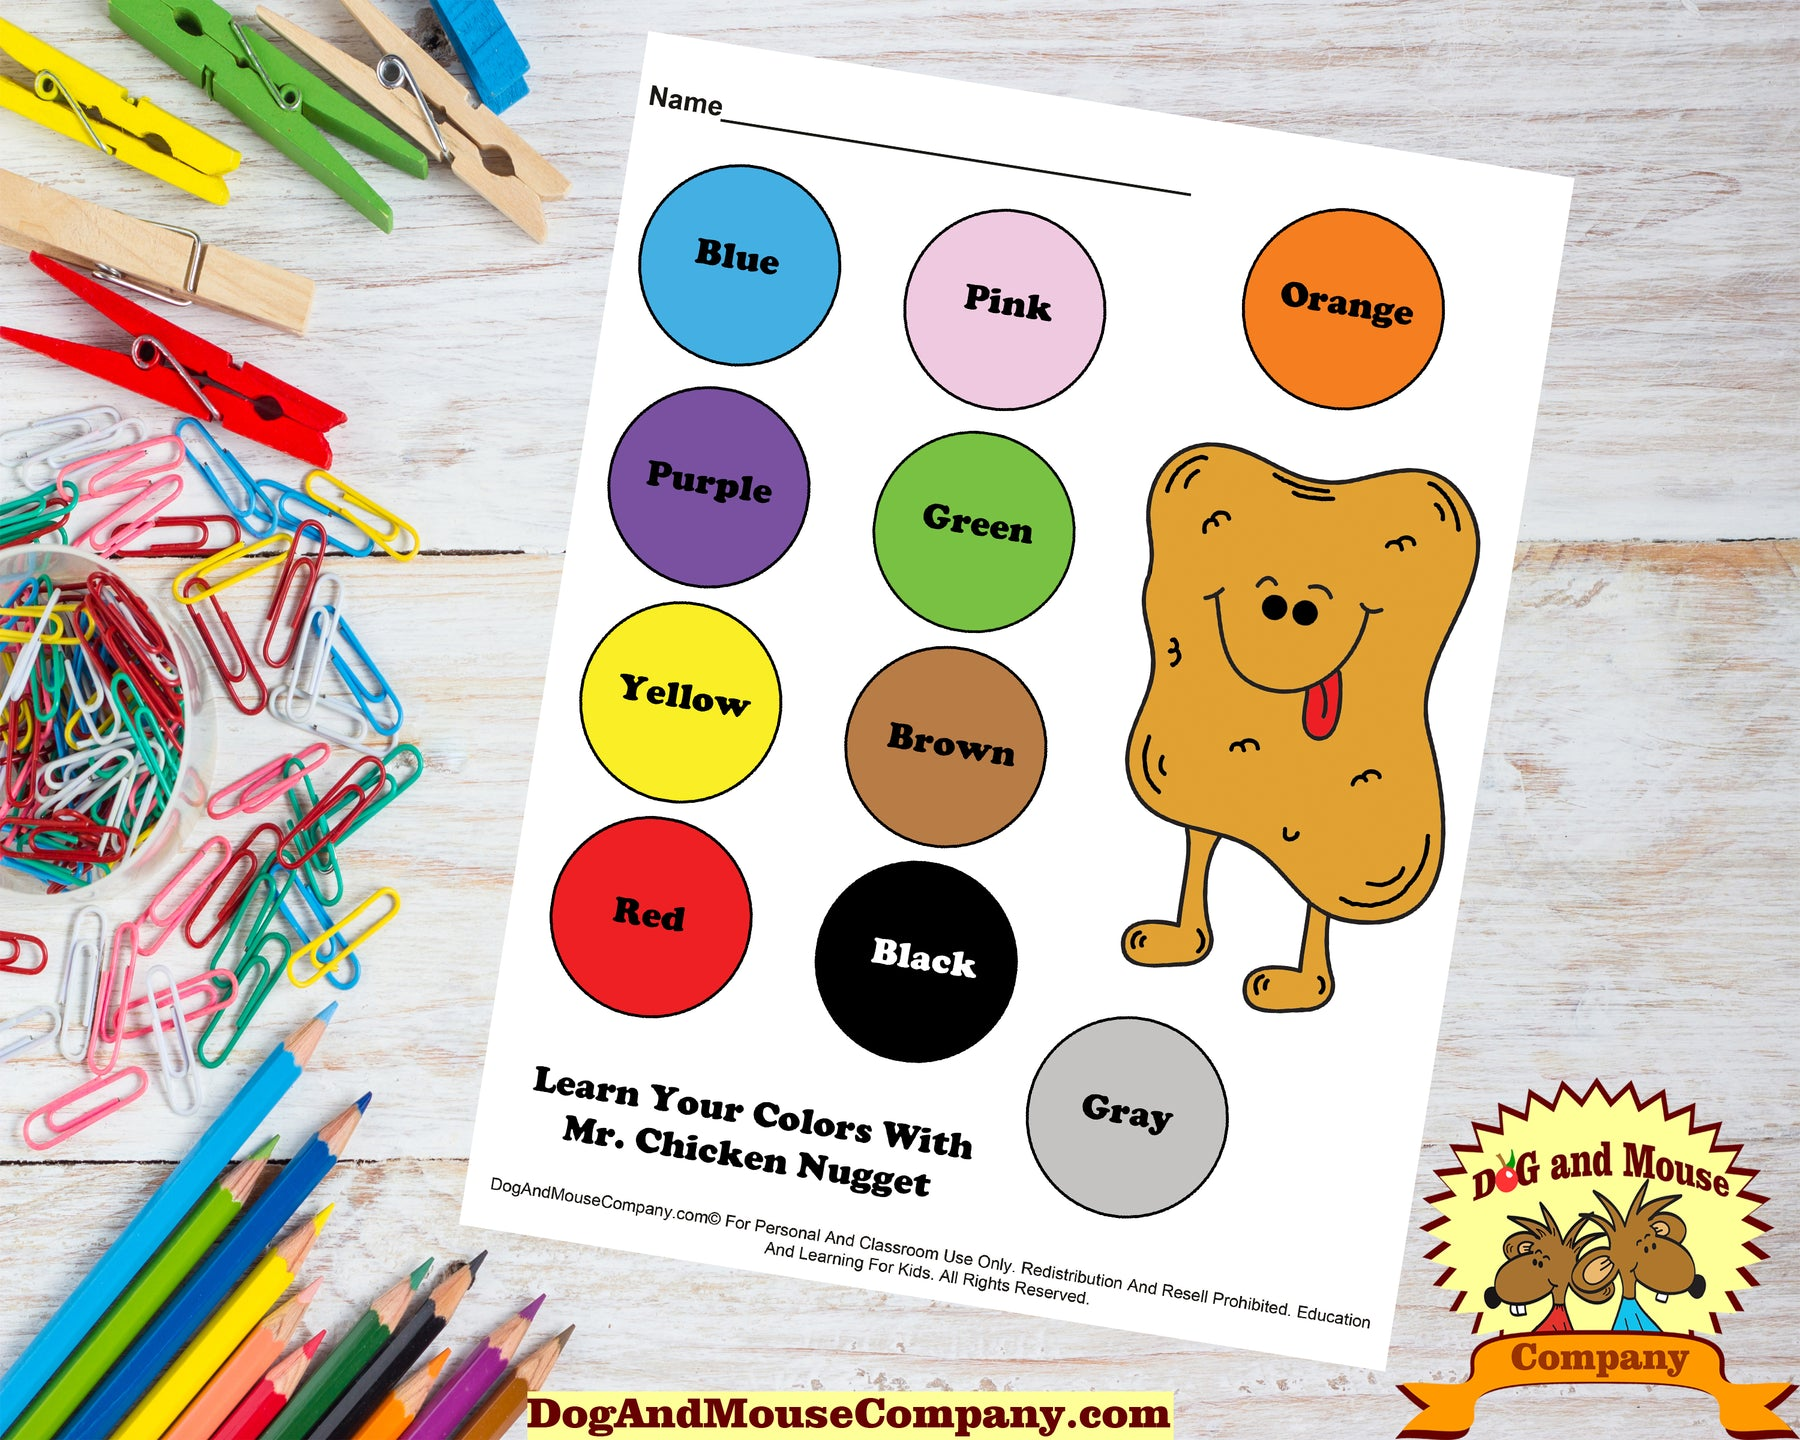 Learn Your Colors With Mr. Chicken Nugget Preschool Worksheets by dogandmousecompany.com